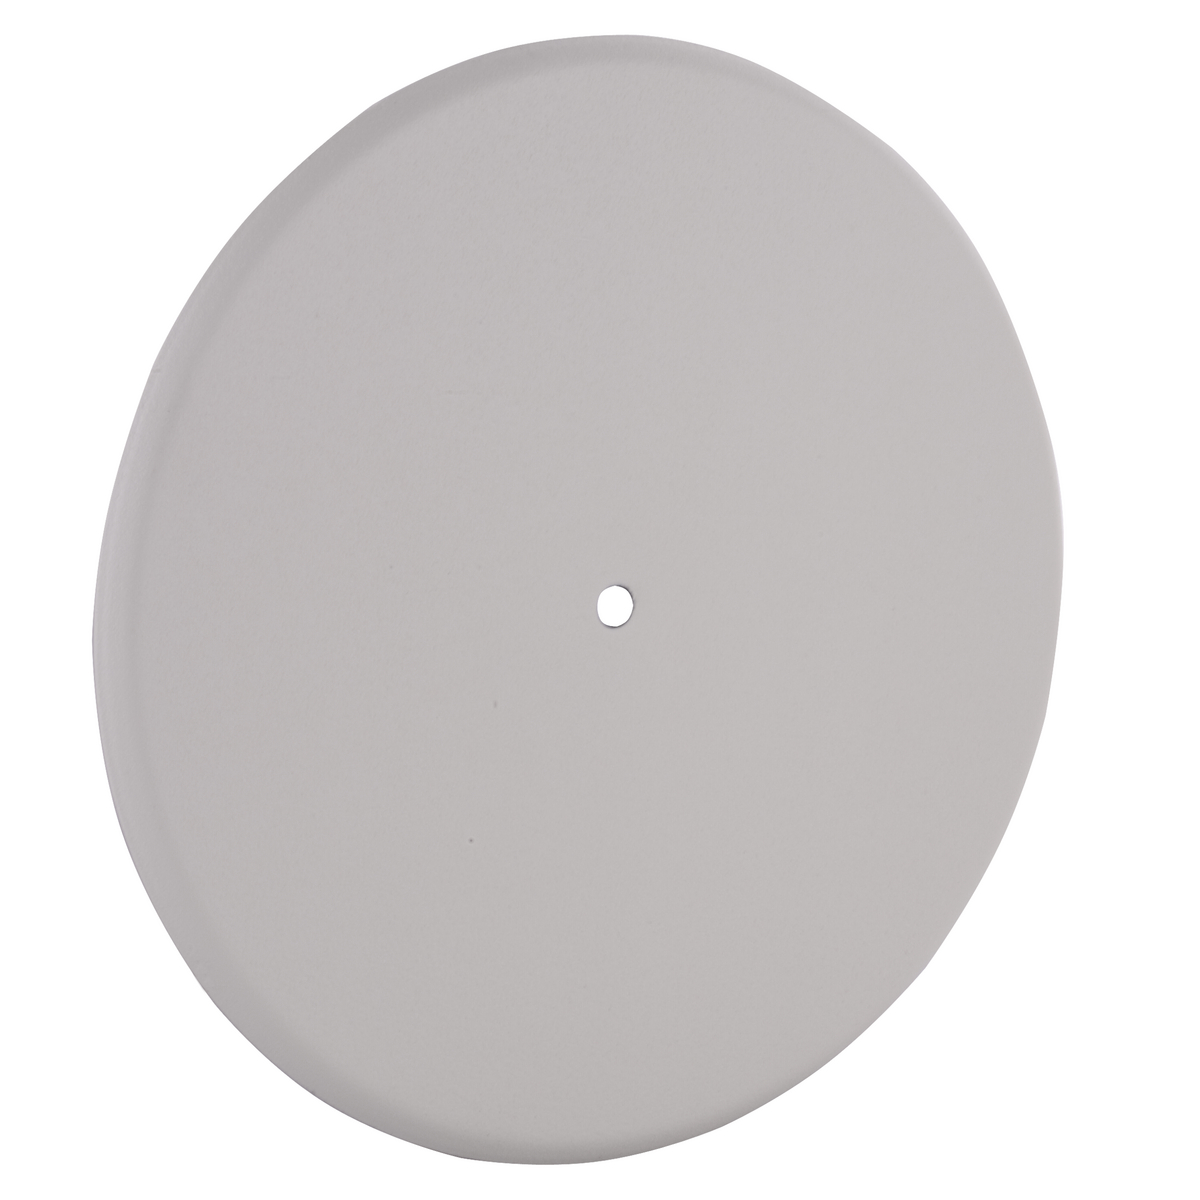 Hubbell-Raco 5652-1 BELL Round Closure Plate